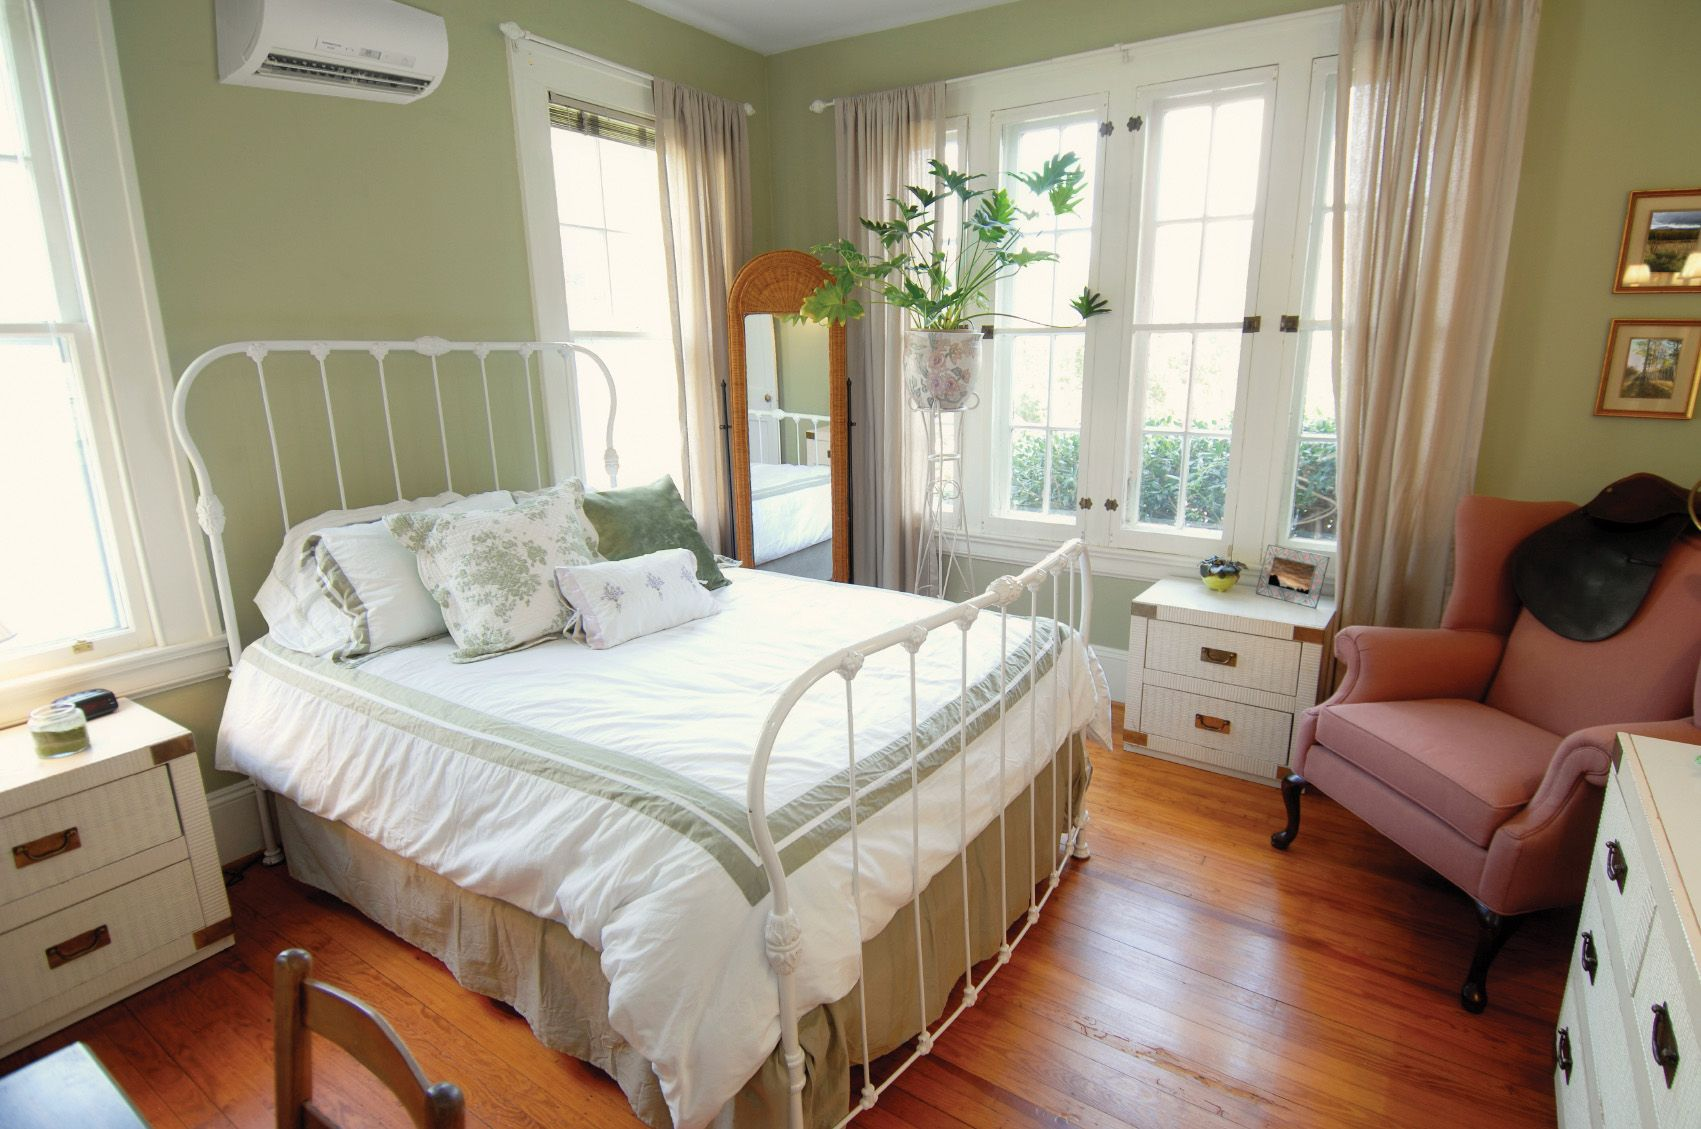 Check Out The Mitsubishi Electric Cooling Heating Head Above The Bed This Indoor Unit Can He Country Style Living Room Cool Room Decor Country Style Bedroom